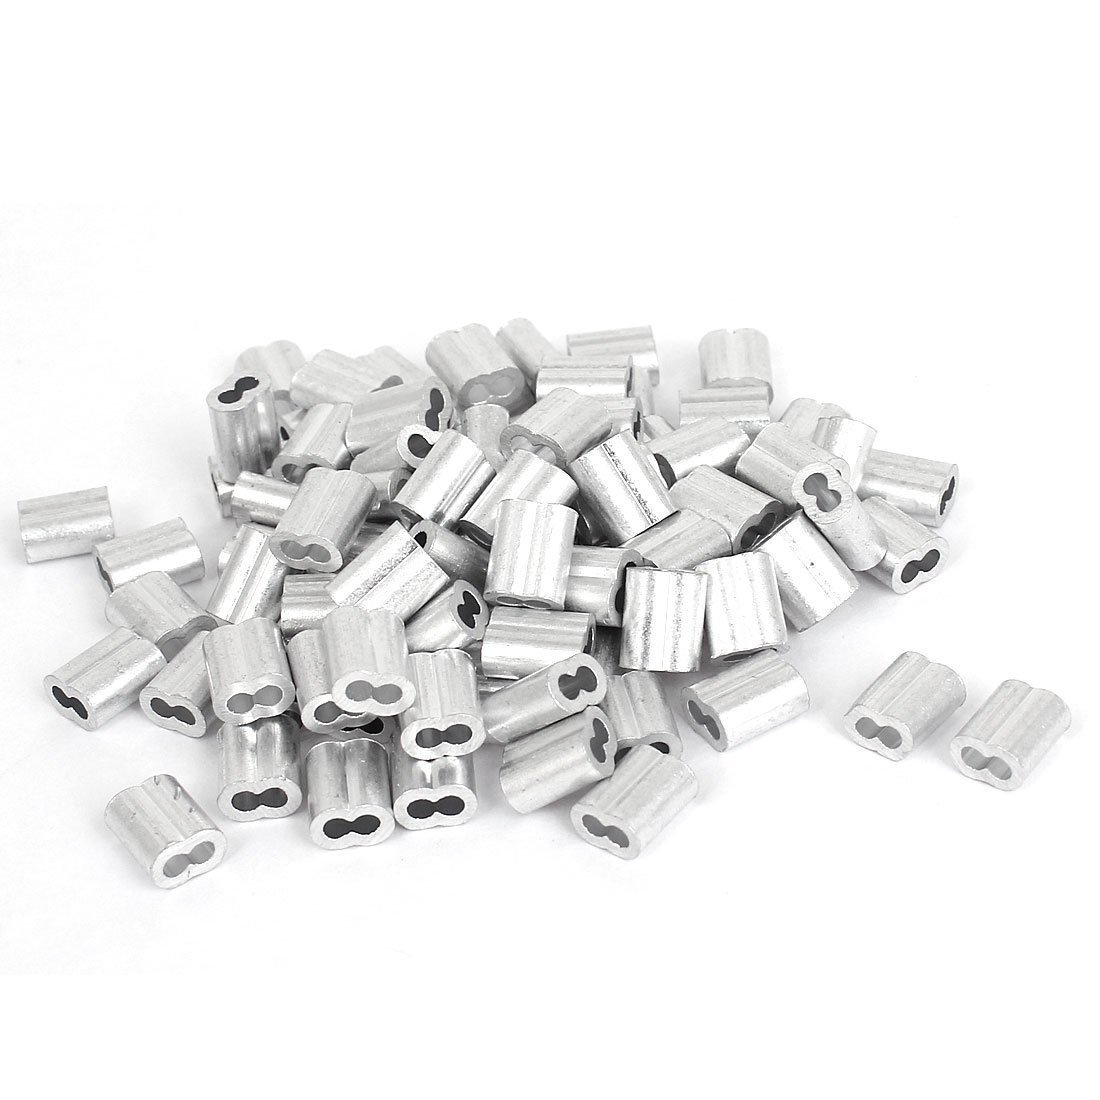 Chris-Wang 100Pcs 2mm Wire Rope Aluminum Sleeves Clip Fittings Cable Crimps(Silver Tone)